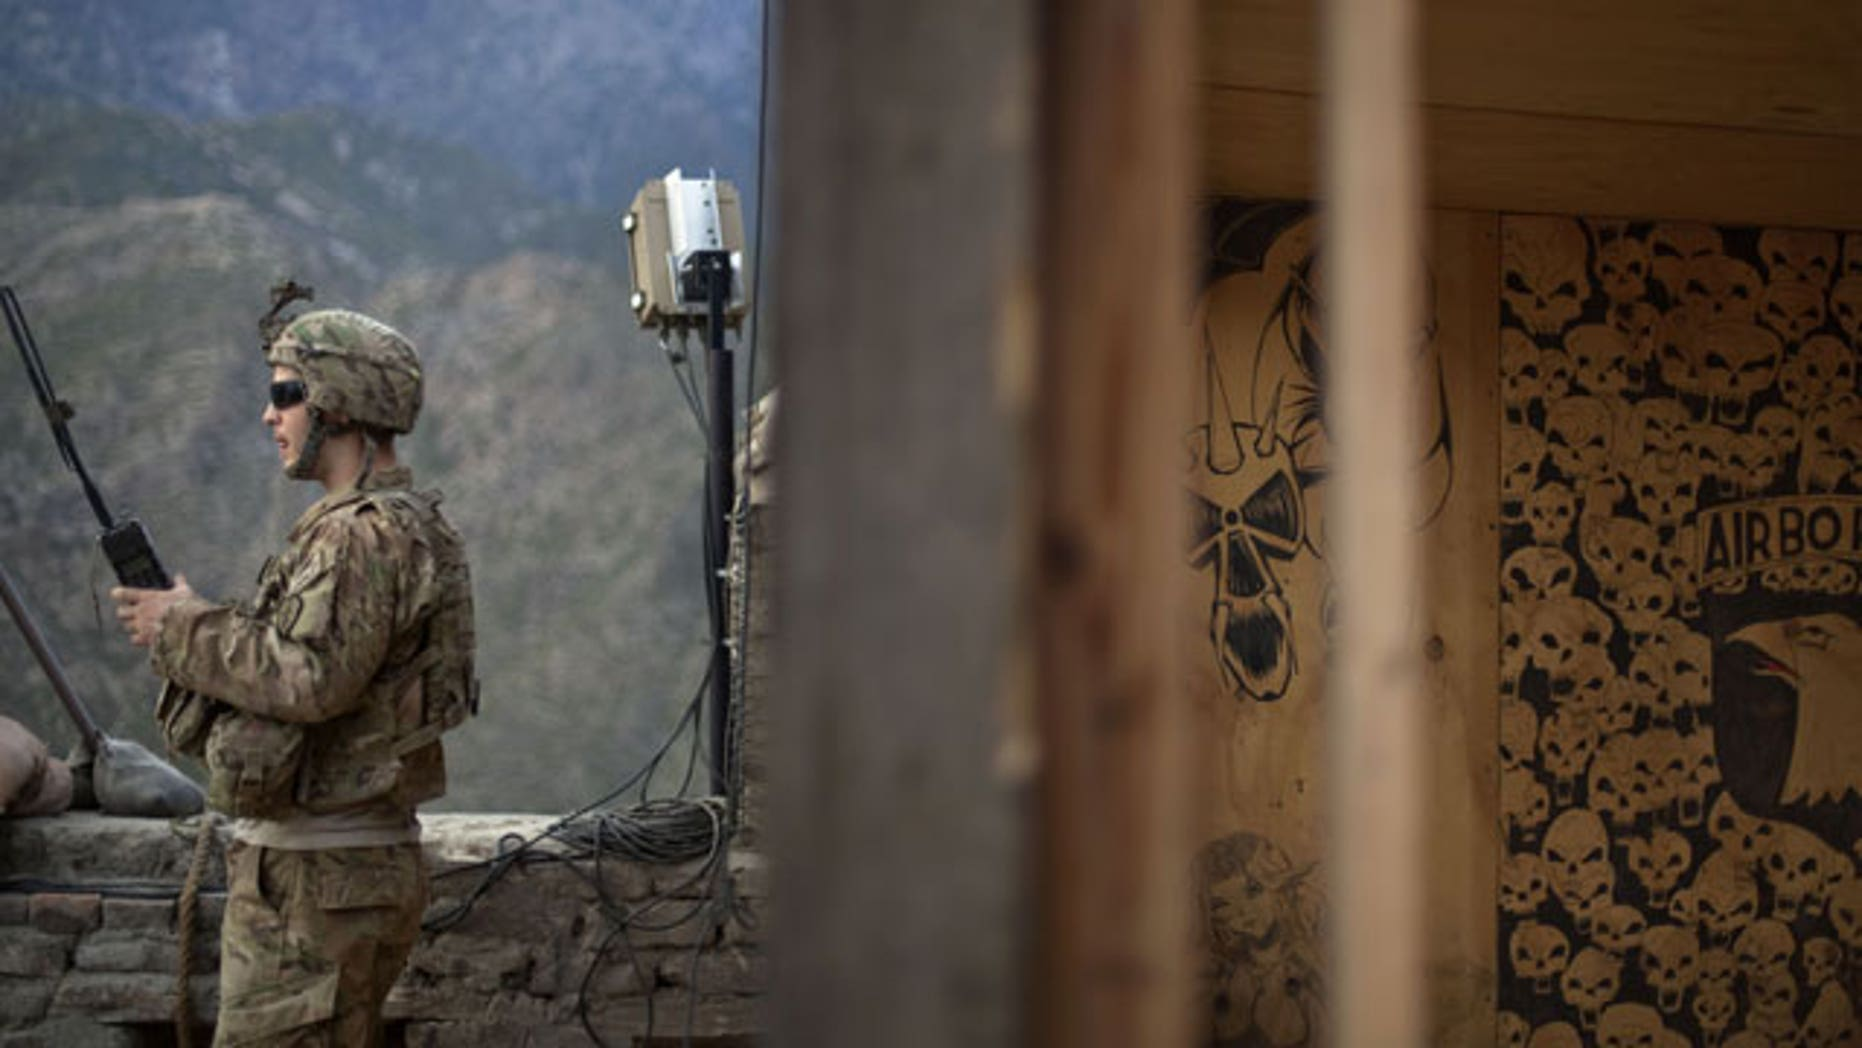 Sgt. Matt Murray, 25, of Warwick, RI., with the U.S. Army's Bravo Company of the 25th Infantry Division, 3rd Brigade Combat Team, 2nd Battalion 27th Infantry Regiment based in Schofield Barracks, Hawaii, listens to the radio next to graffiti left by a previous unit after receiving reports of an impending attack by insurgents Friday, Sept. 9, 2011 at Observation Post Coleman in Kunar province, Afghanistan.